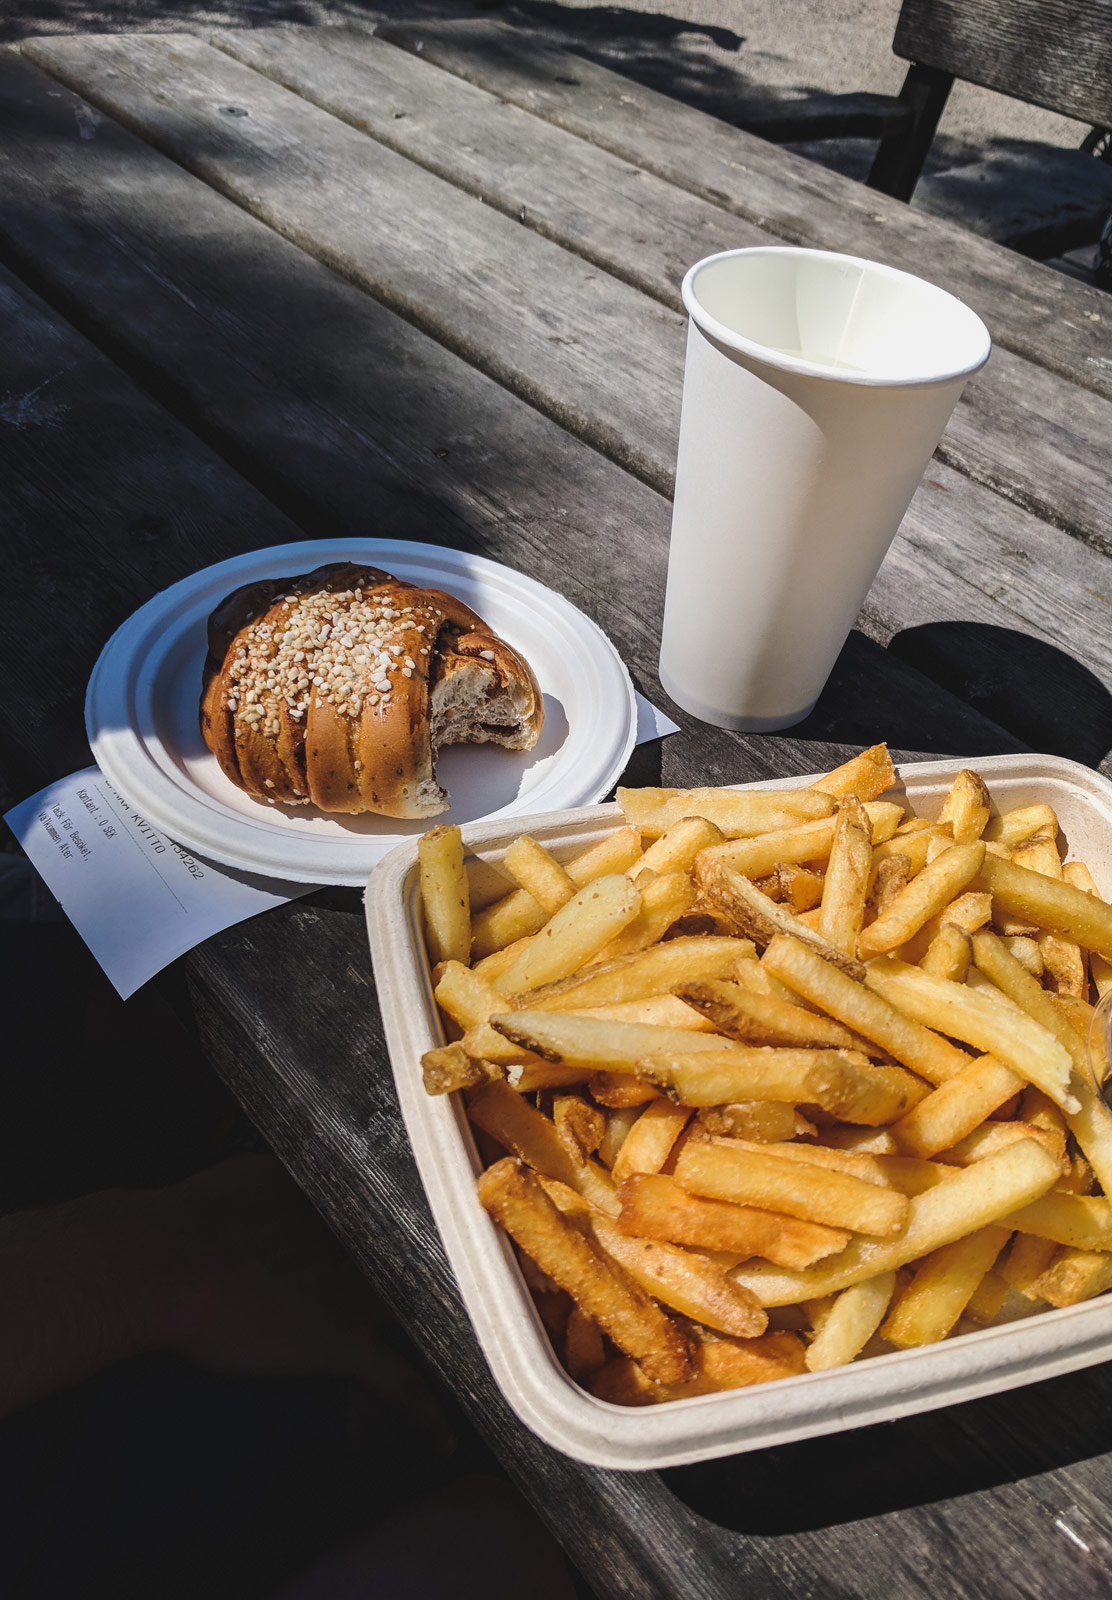 Chips and a cinnamon bun